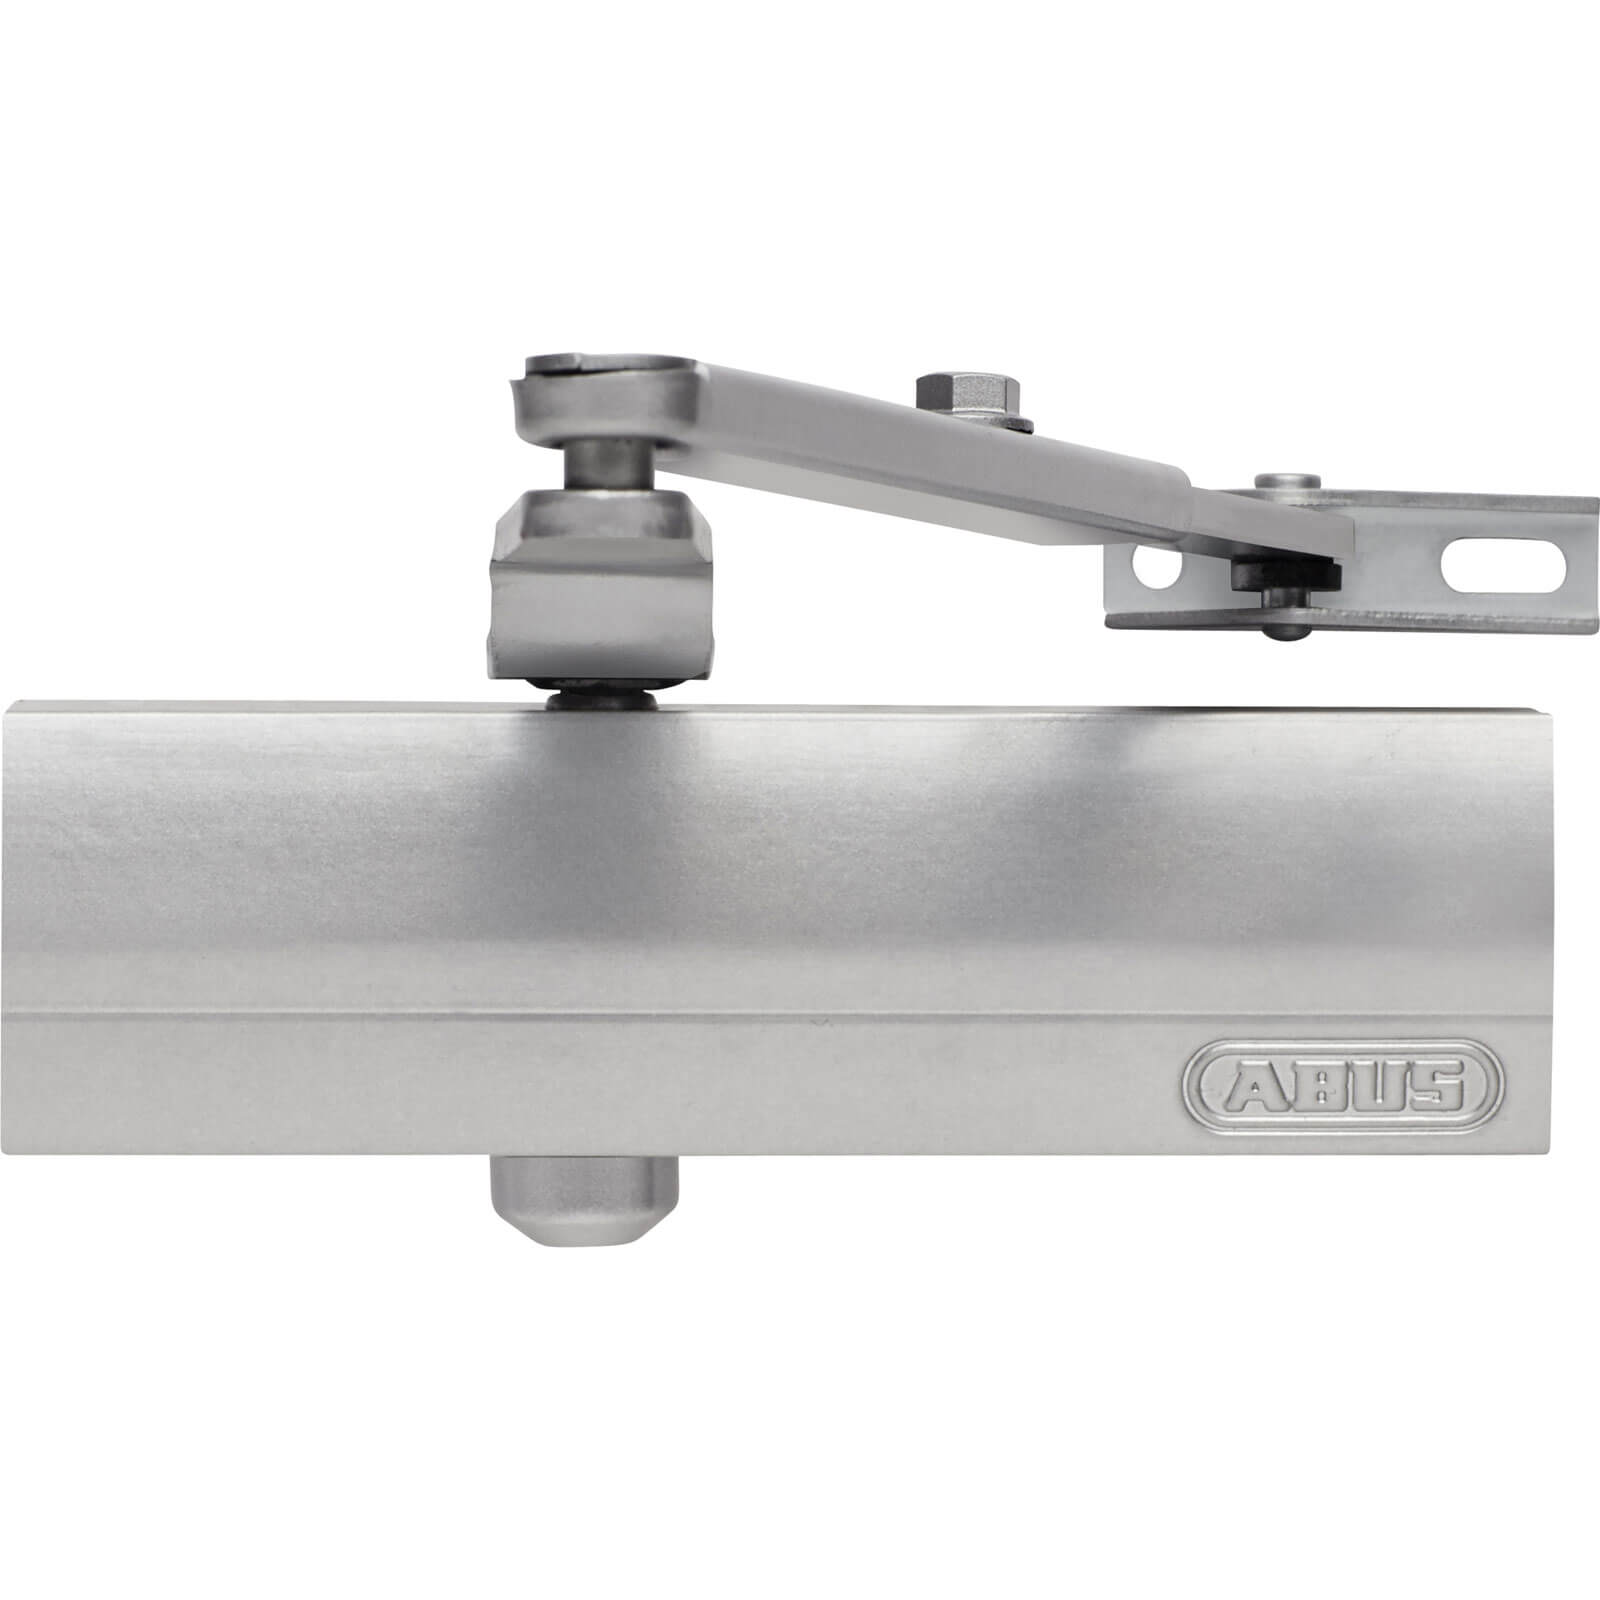 Image of Abus AC7023 S Door Closer 65kg